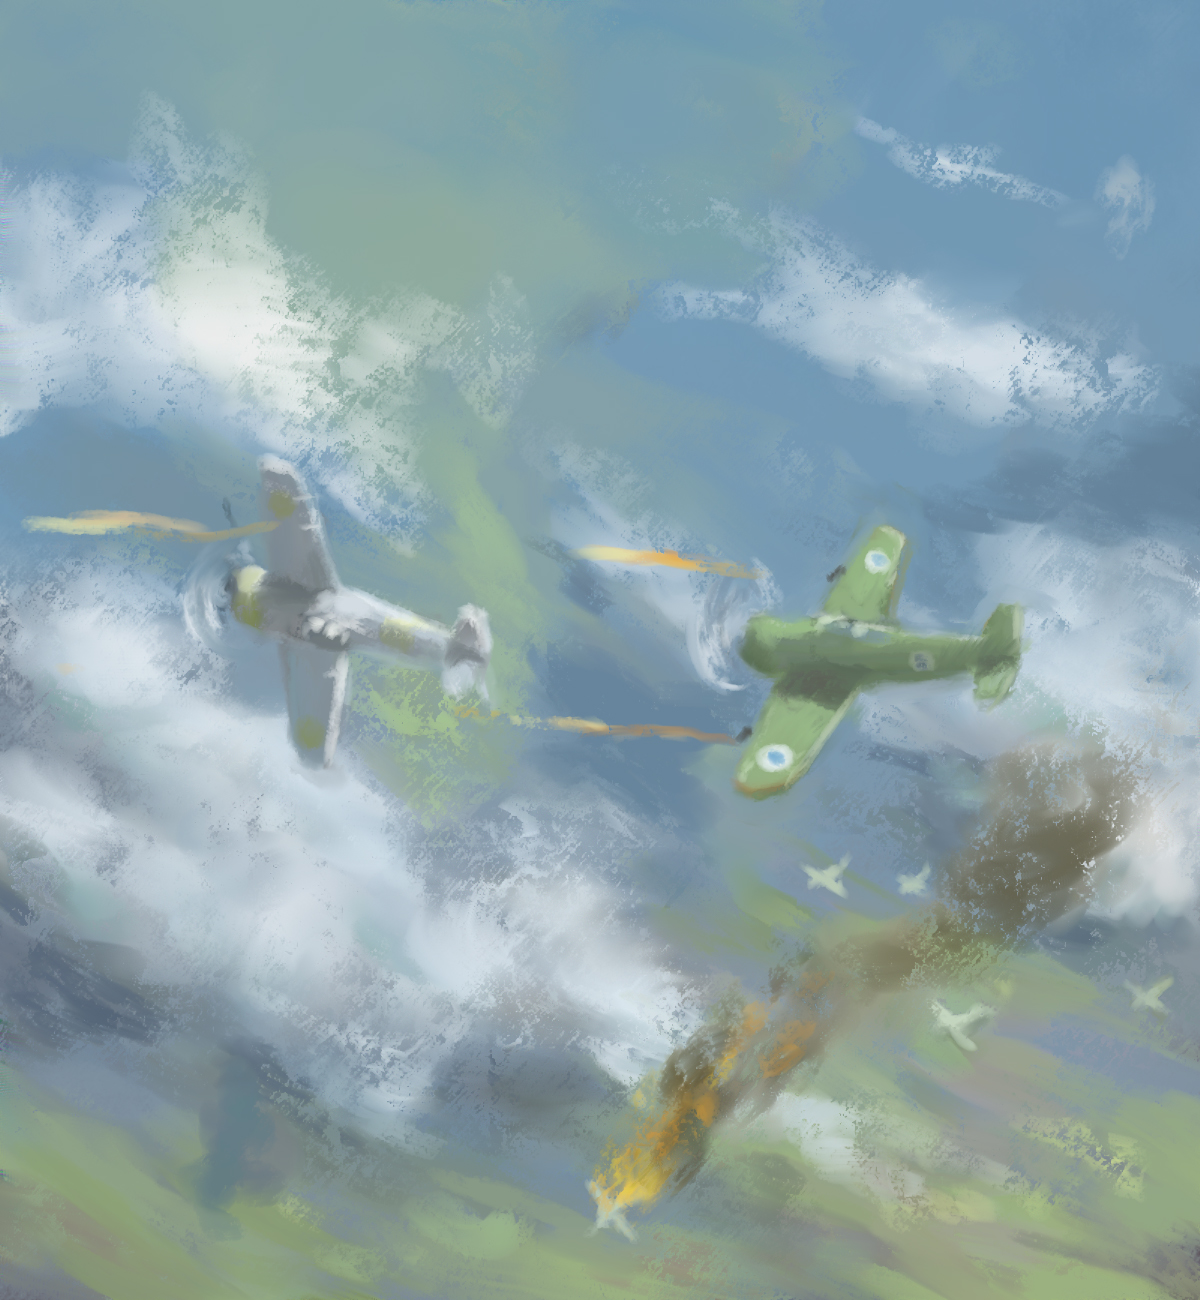 30 minute speedpaint - Playing tag